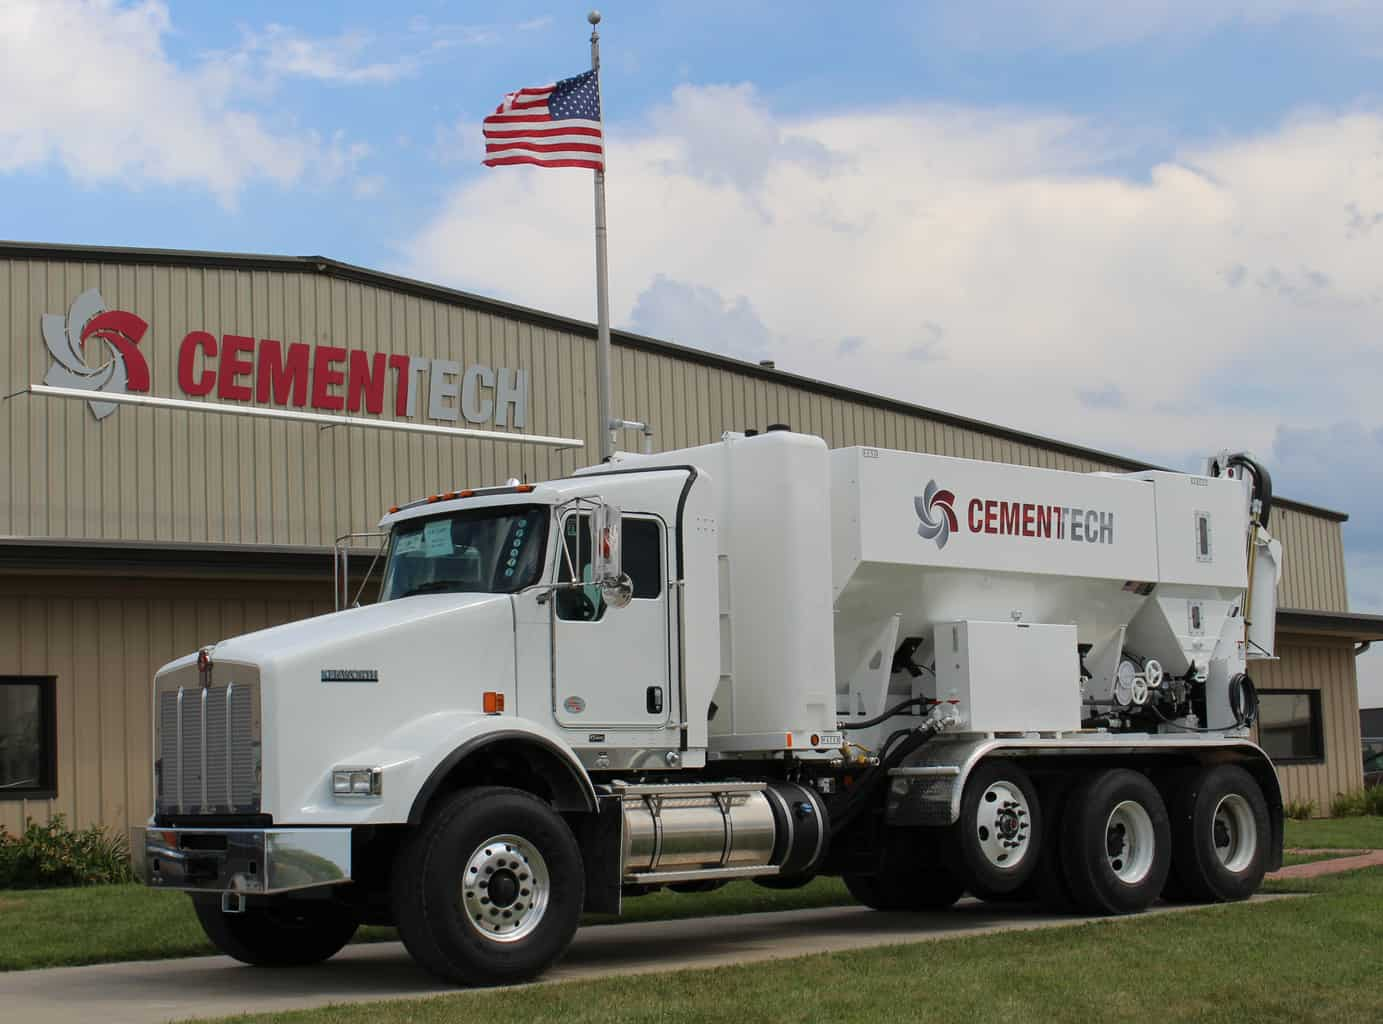 What is a mobile concrete mixer?